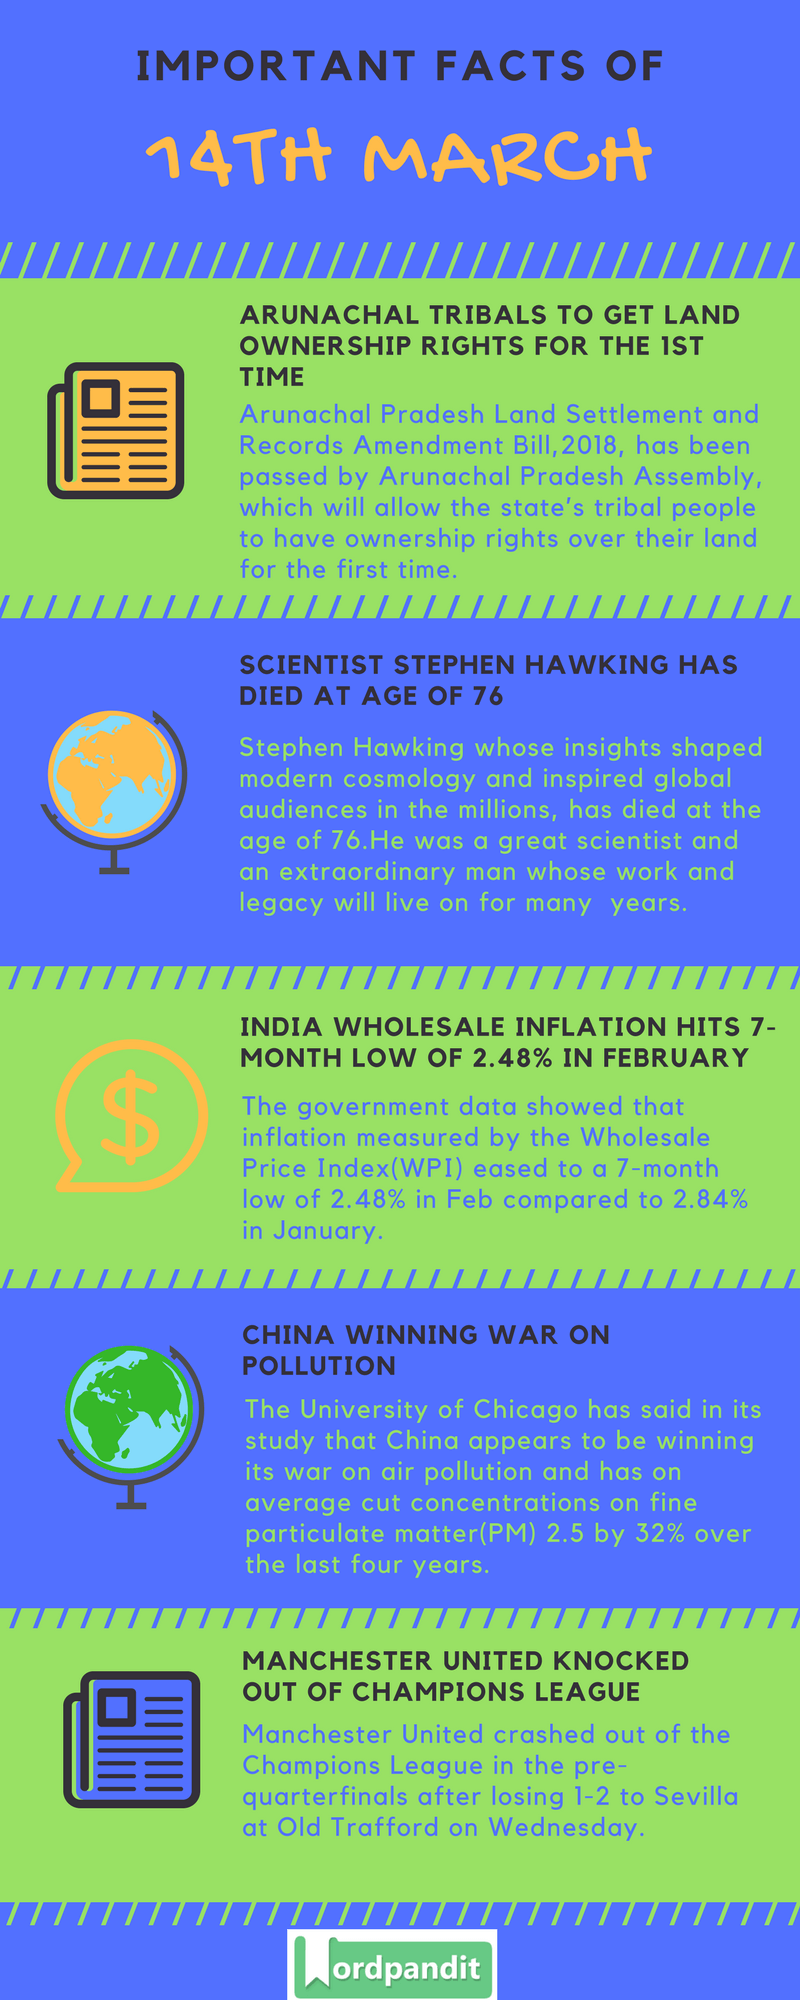 Daily Current Affairs 14 March 2018 Current Affairs Quiz March 14 2018 Current Affairs Infographic